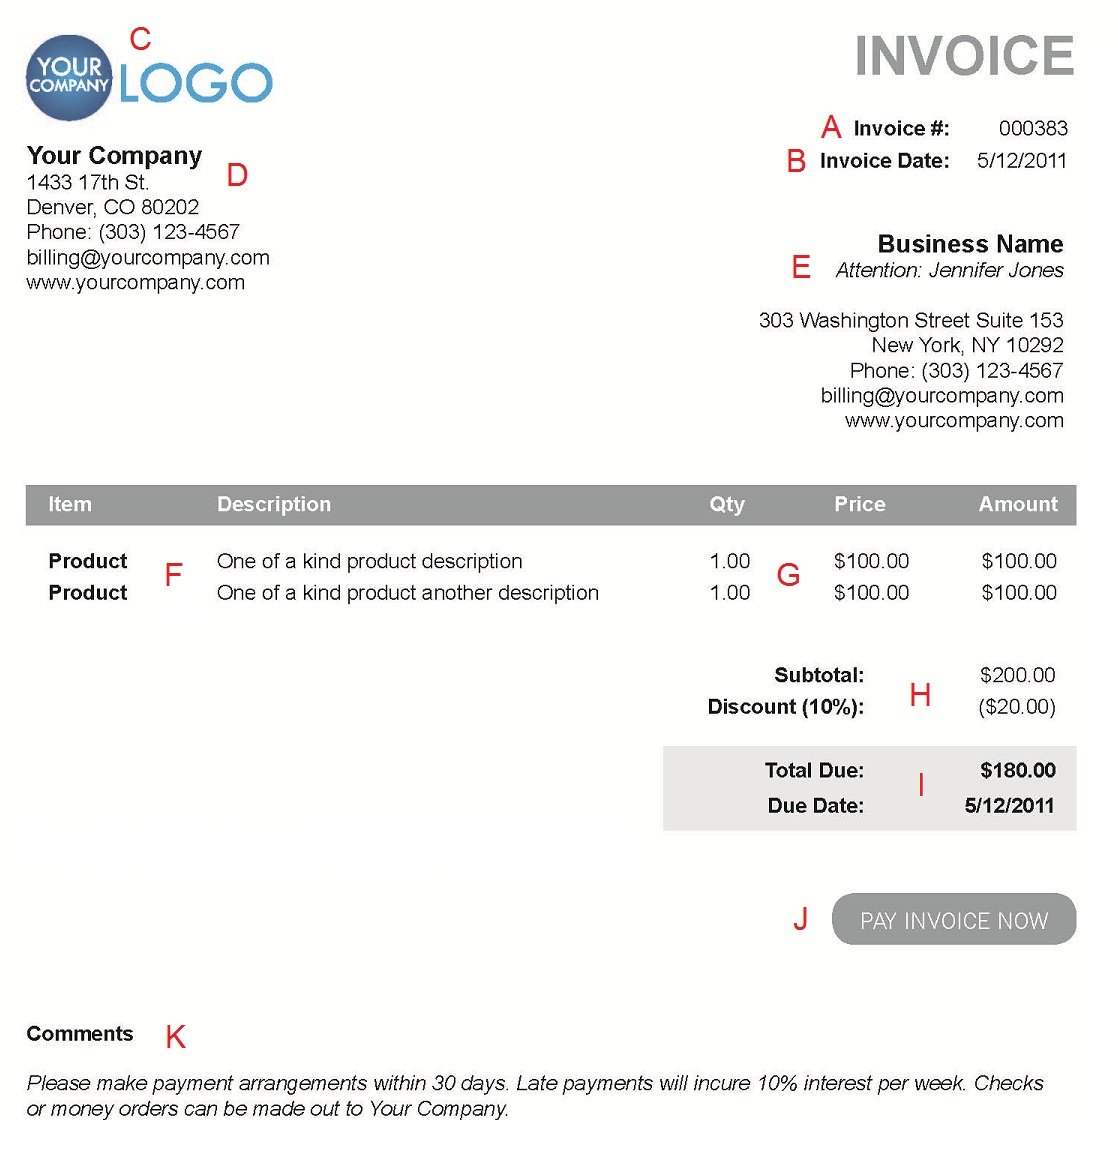 Coachoutletonlineplusus  Scenic The  Different Sections Of An Electronic Payment Invoice With Handsome A  With Awesome Ms Word Custom Invoice Template Also Free Blank Invoice Pdf In Addition Business Invoice Factoring And Online Invoice Payment As Well As What Is The Invoice Price Of A New Car Additionally Soho Invoice From Paysimplecom With Coachoutletonlineplusus  Handsome The  Different Sections Of An Electronic Payment Invoice With Awesome A  And Scenic Ms Word Custom Invoice Template Also Free Blank Invoice Pdf In Addition Business Invoice Factoring From Paysimplecom